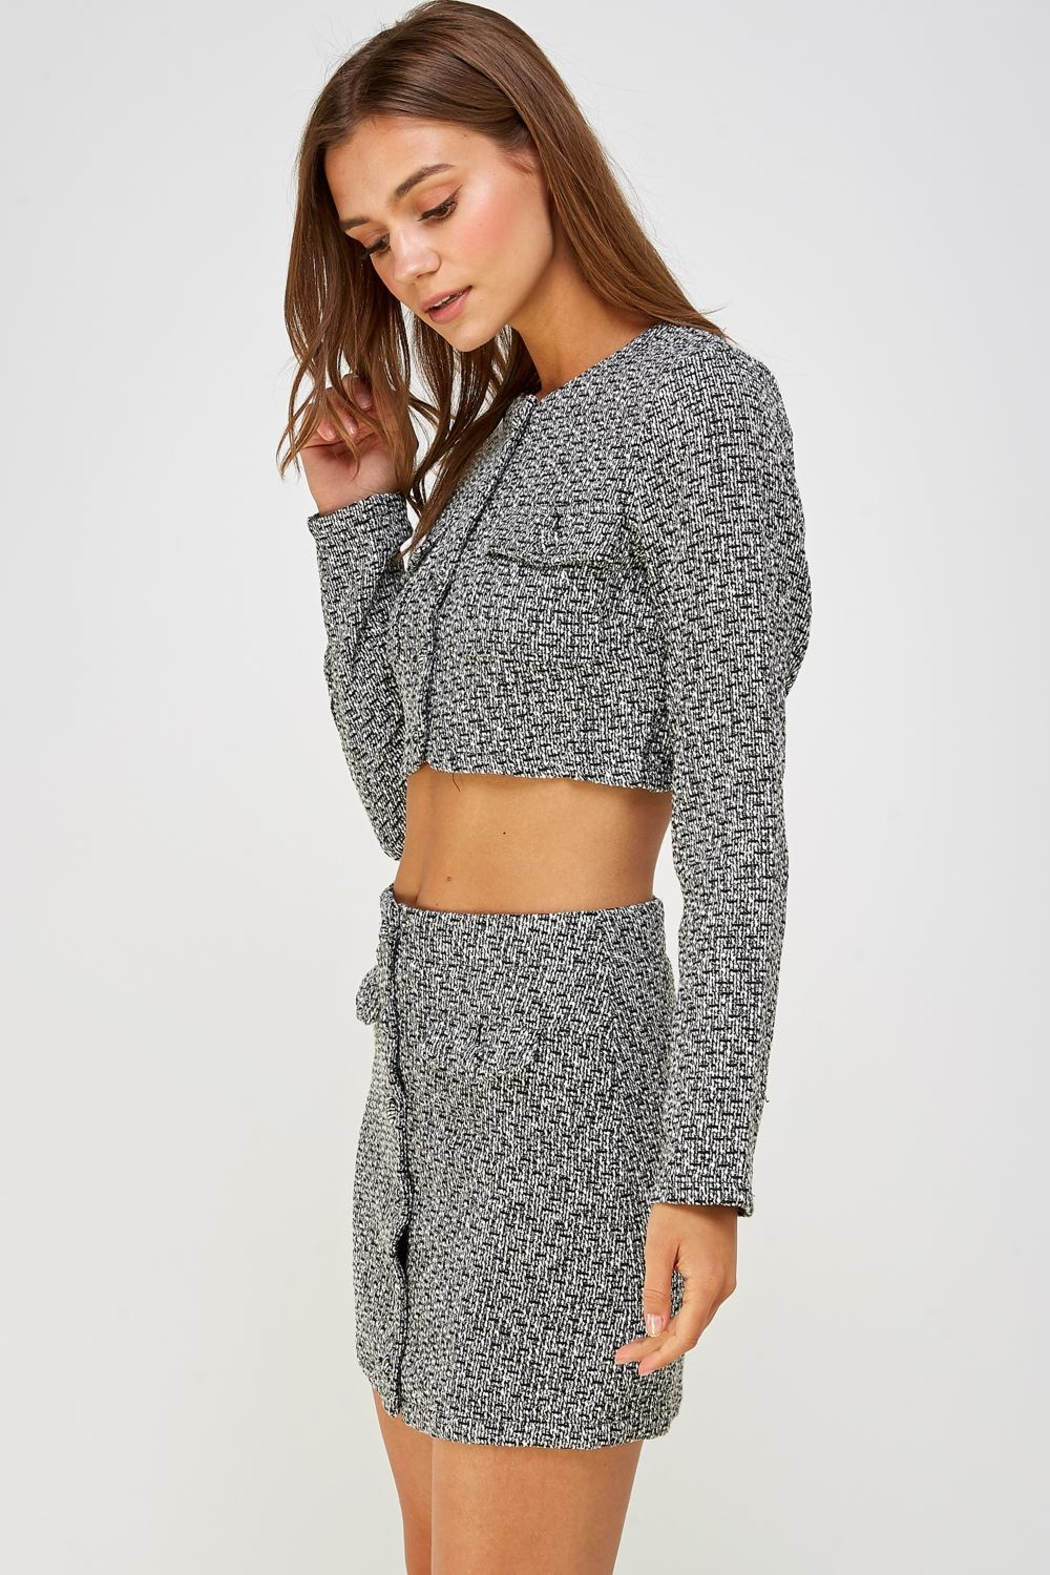 Wild Honey Tweed Skirt Set - Side Cropped Image